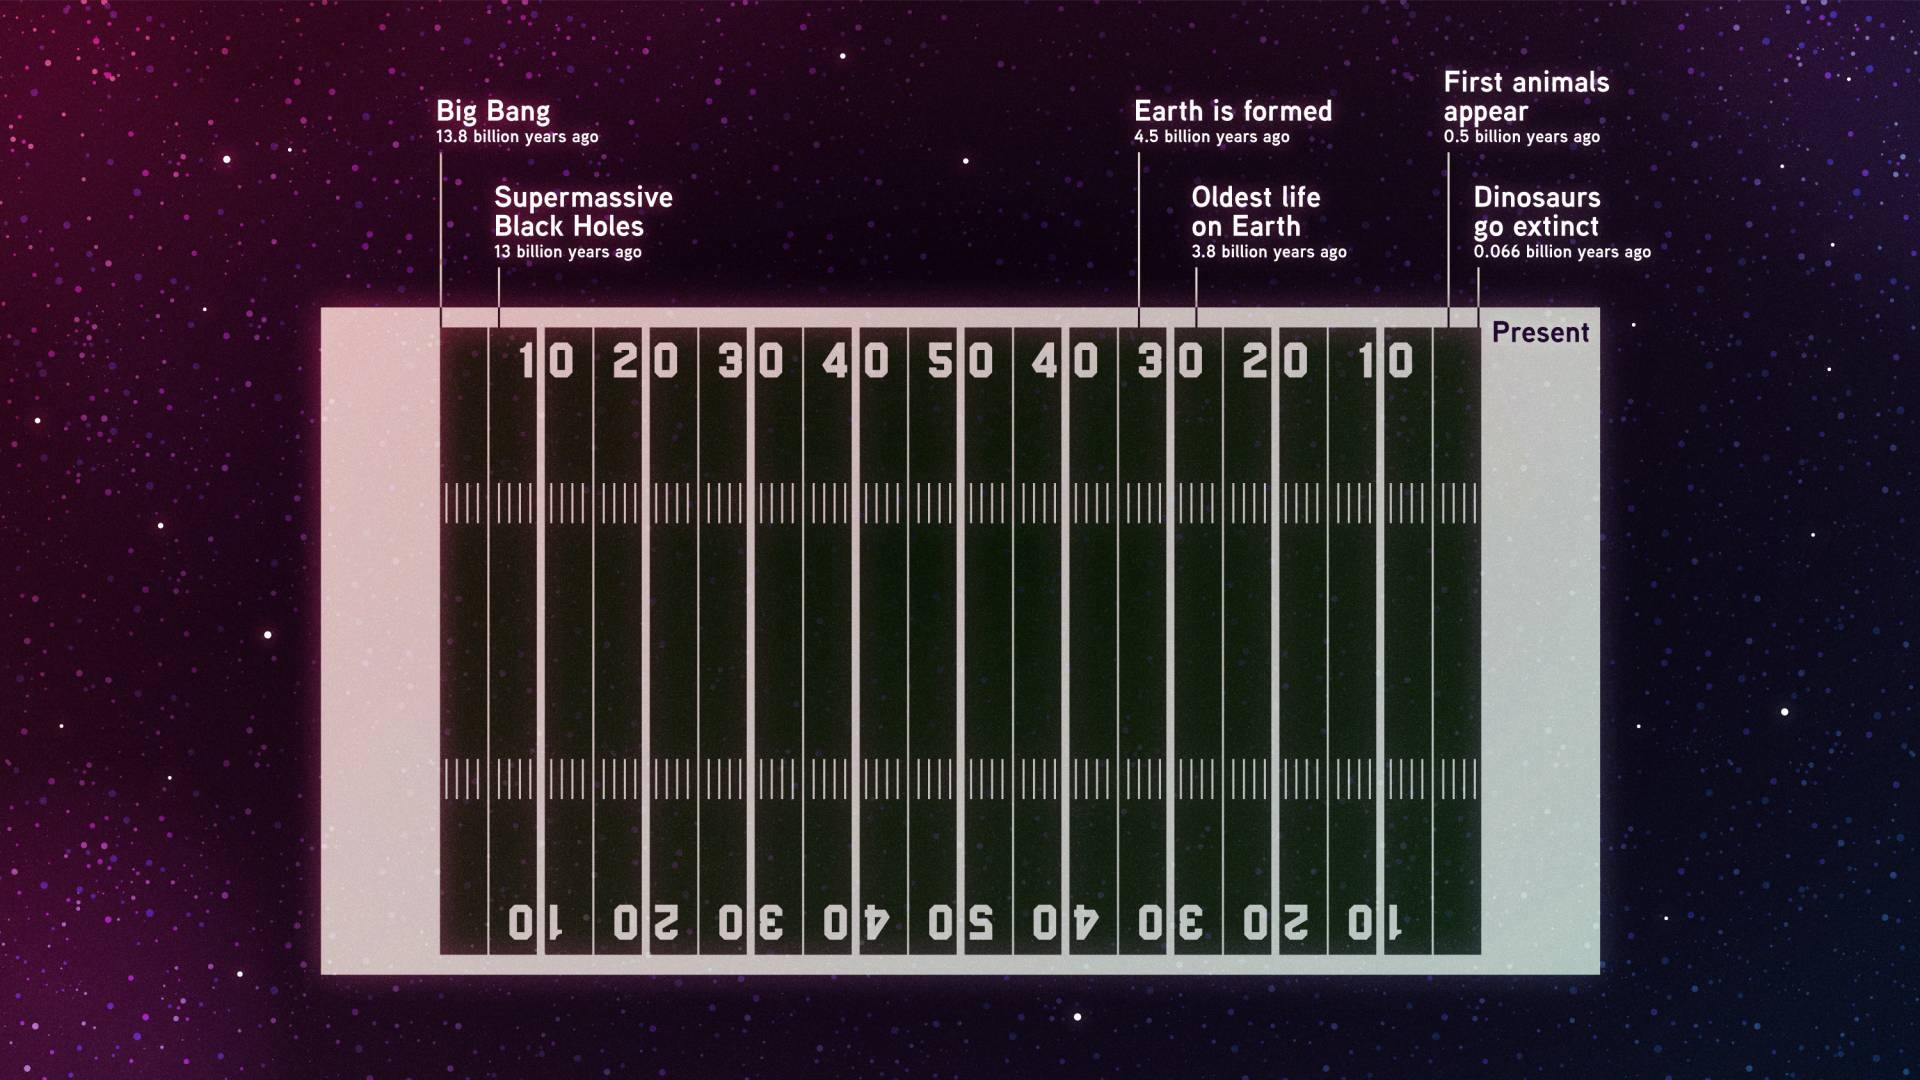 The history of the universe represented as a football field